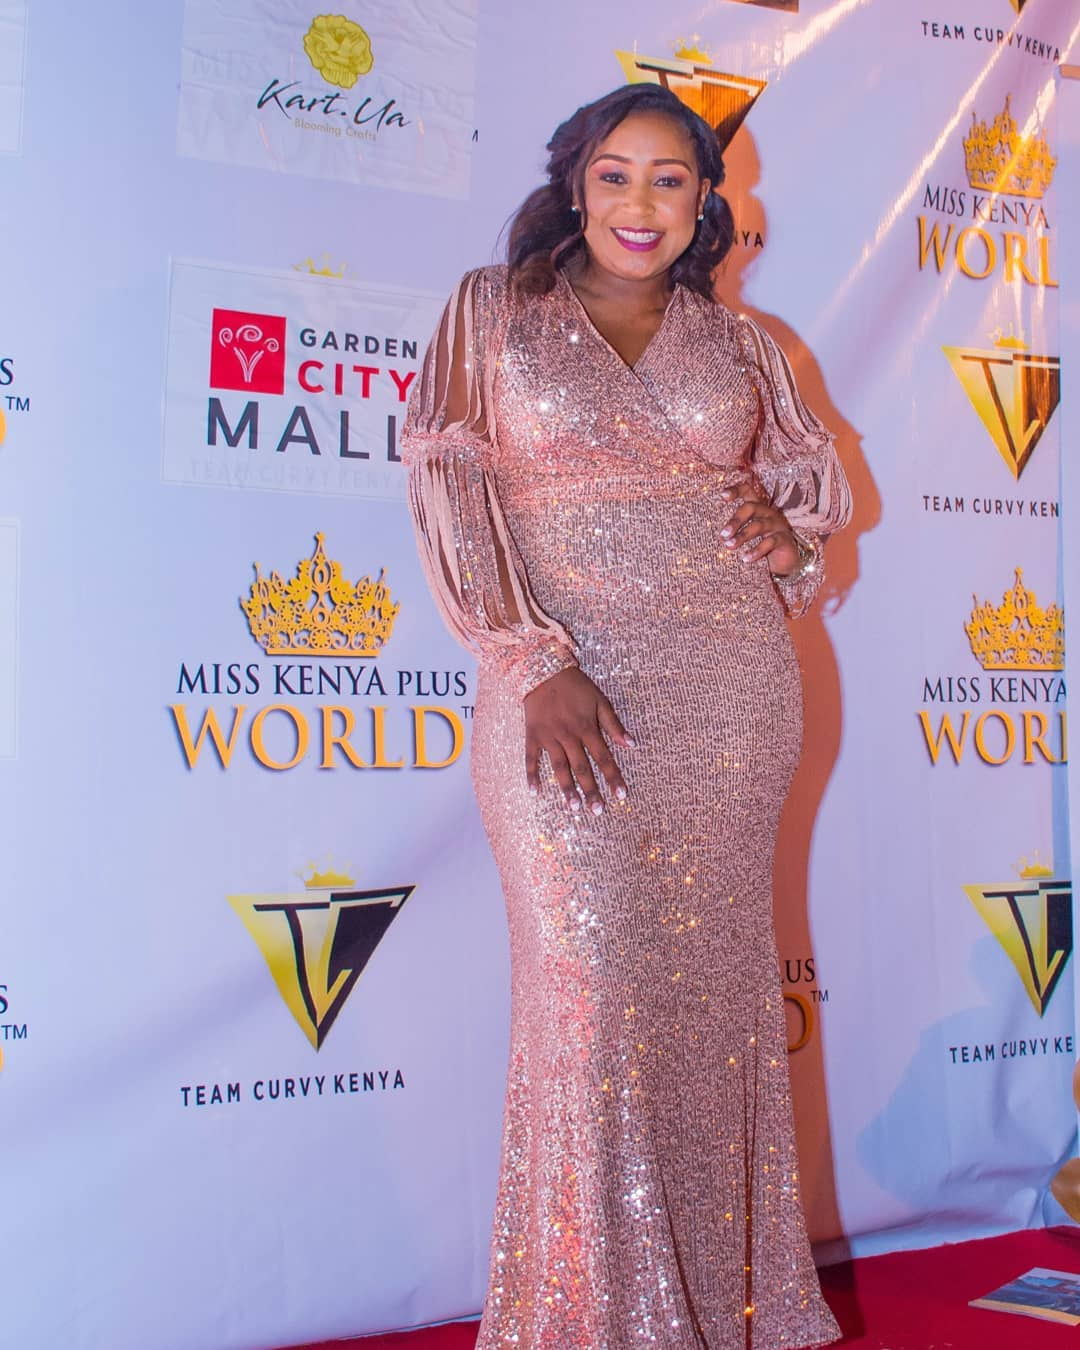 66116269 142822366817297 1959319423203377368 n - Fire him ASAP! Betty Kyallo's make-up fail gets fans talking